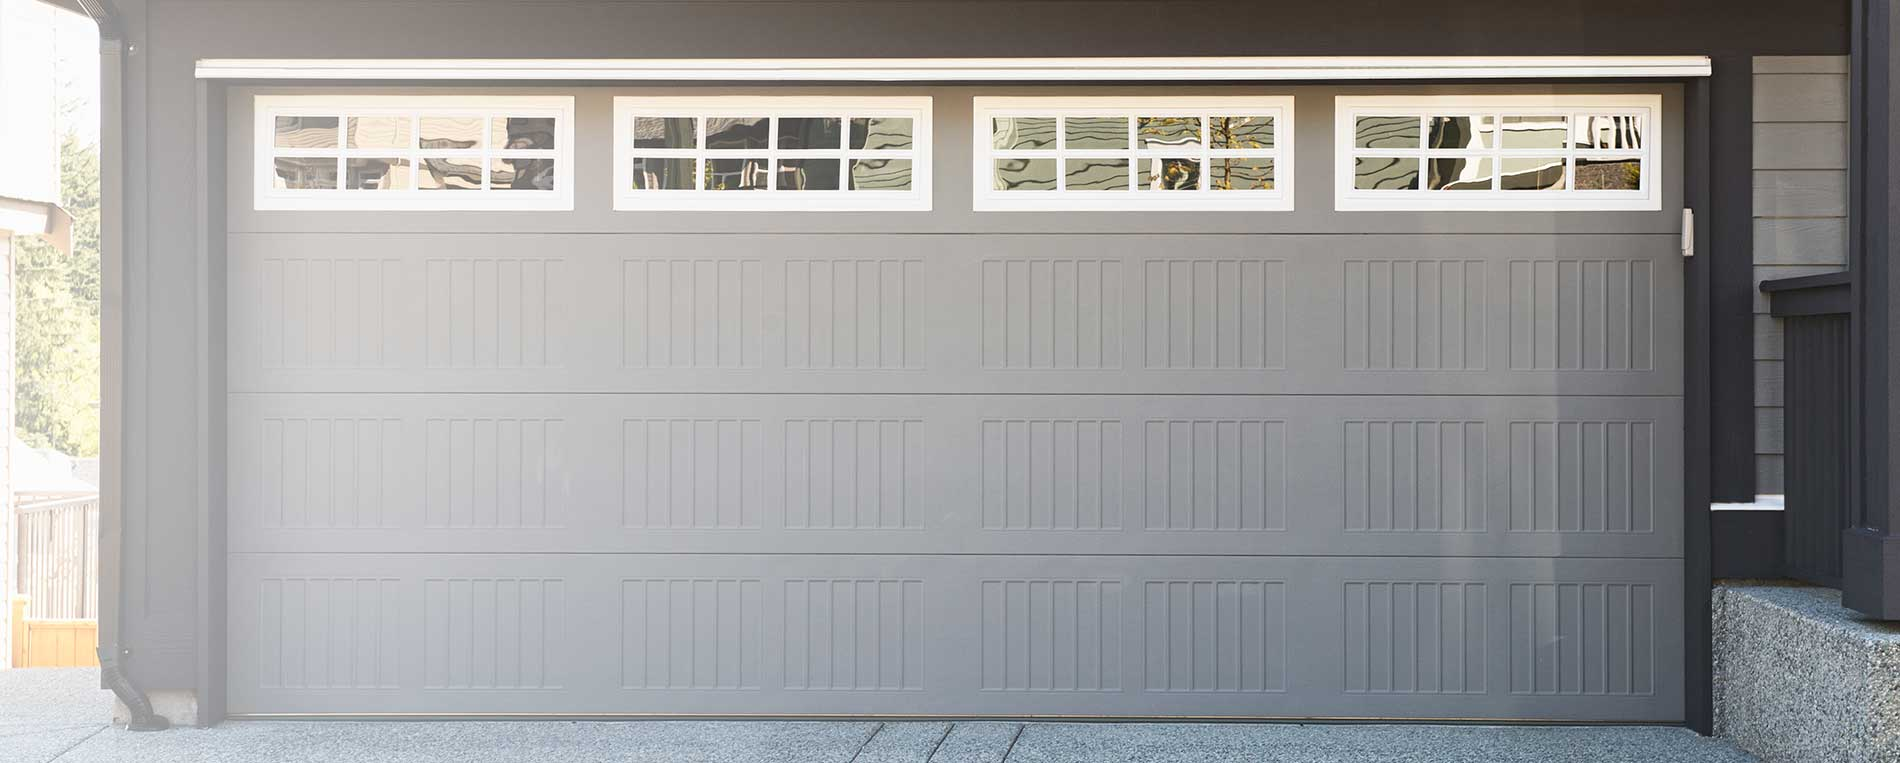 Top Three Garage Door Opener Brands